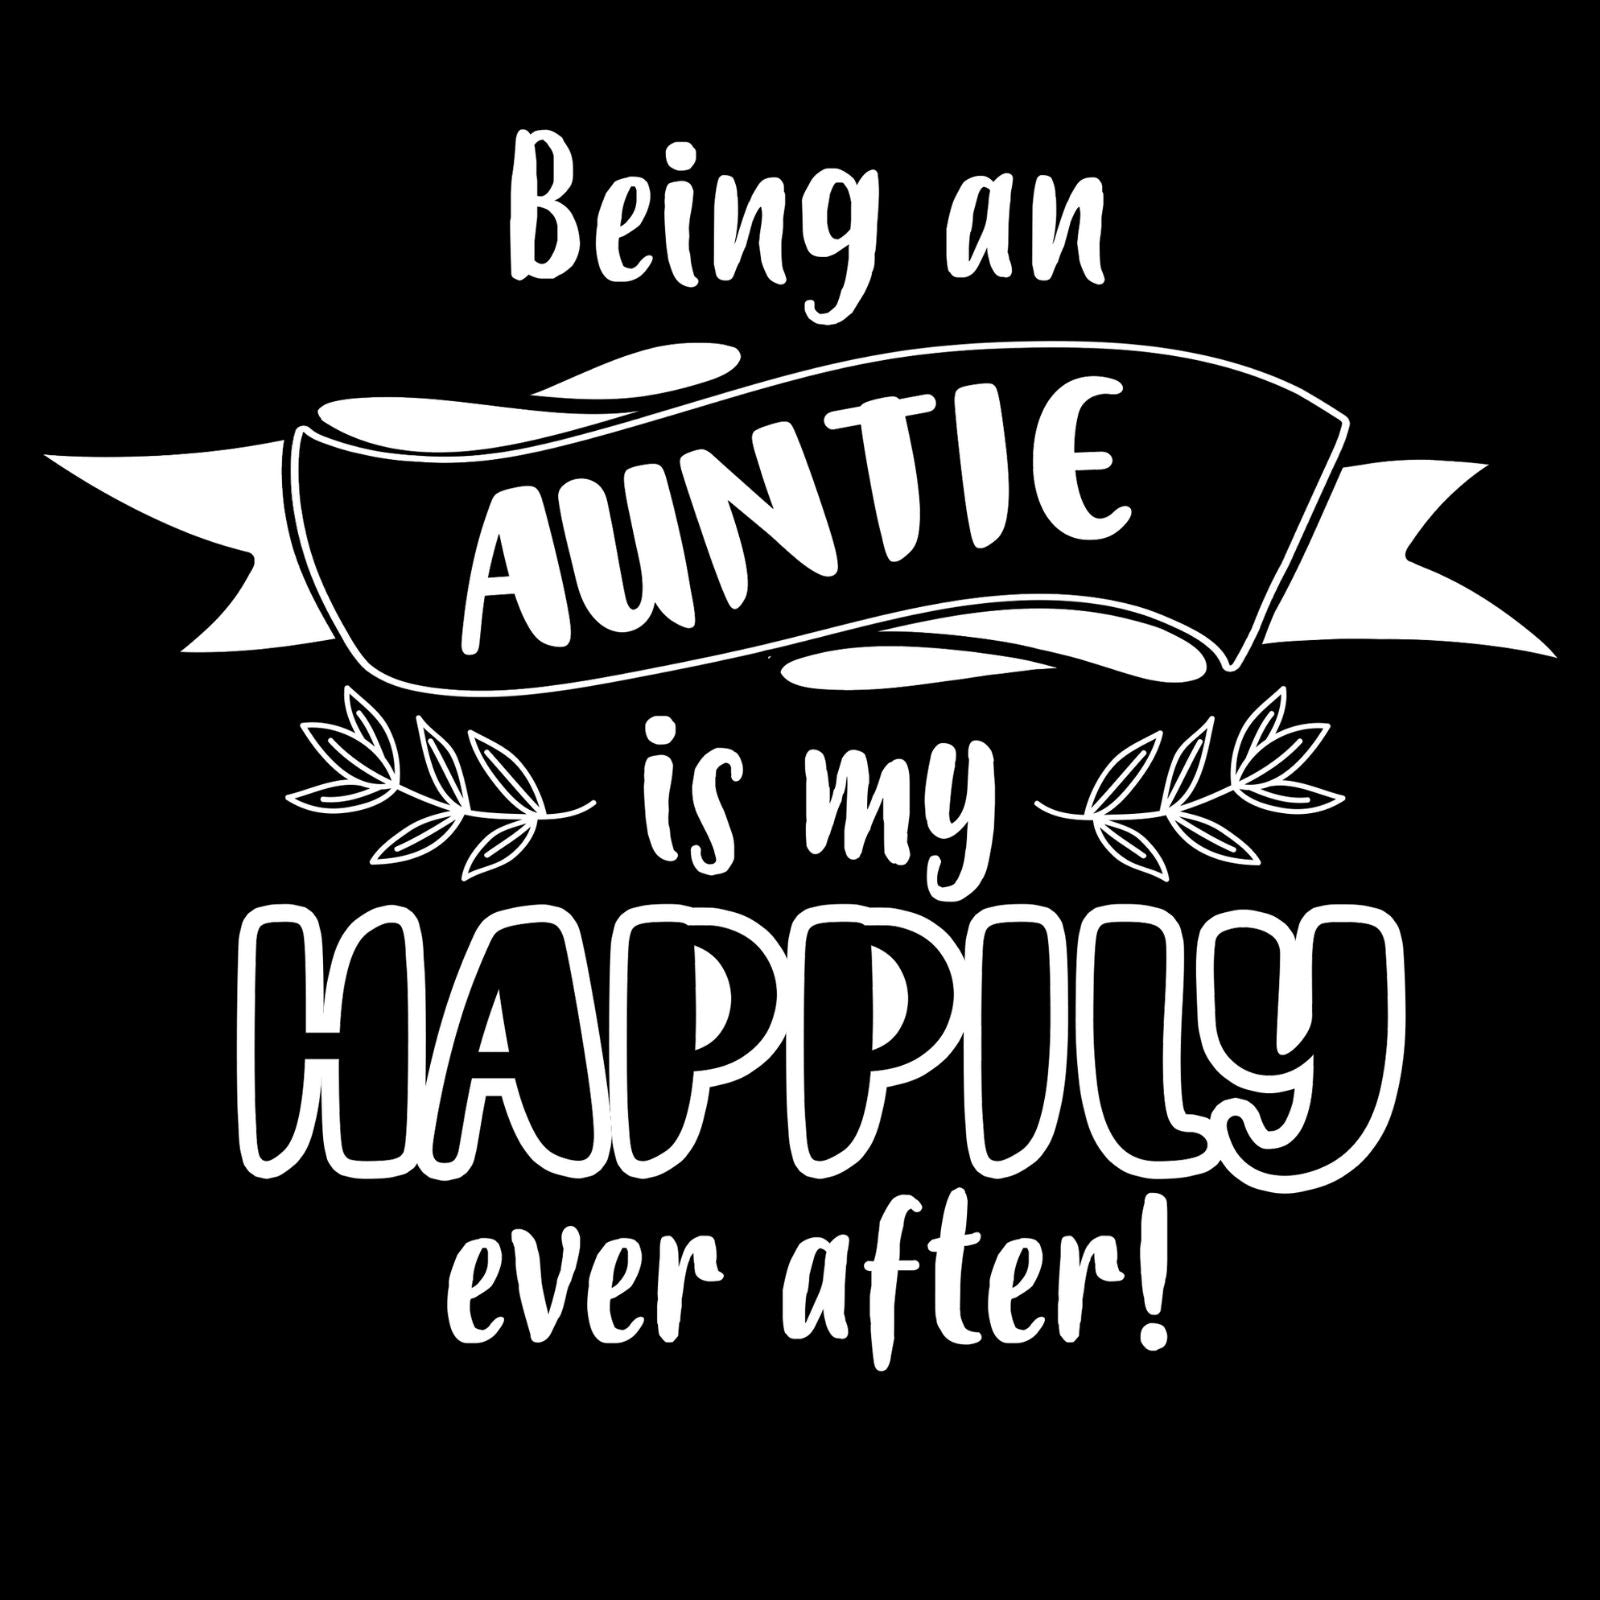 Being A Auntie Is My Happily Ever After! - Bastard Graphics